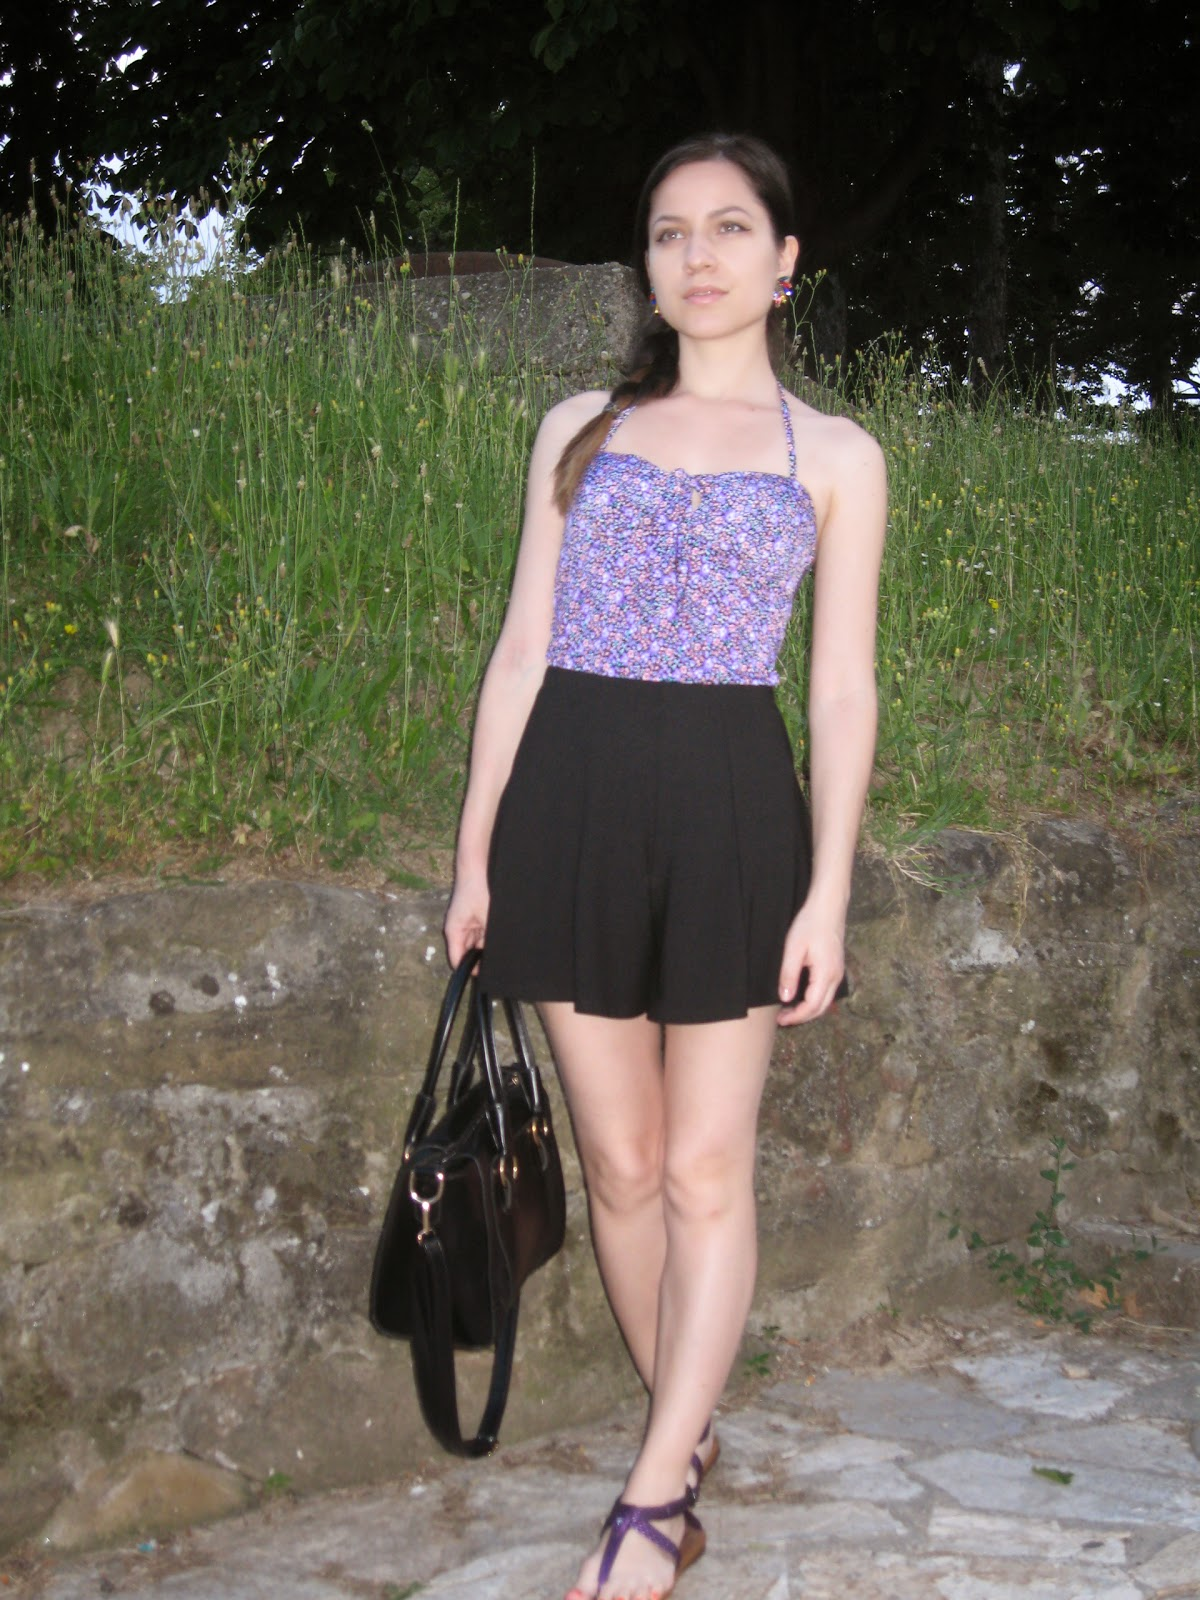 black flared high waisted shorts, black tote bag, purple floral flowers fitted top, side braid, purple flip flops flat sandals, styling high waisted shorts, colorful rhinestone earrings